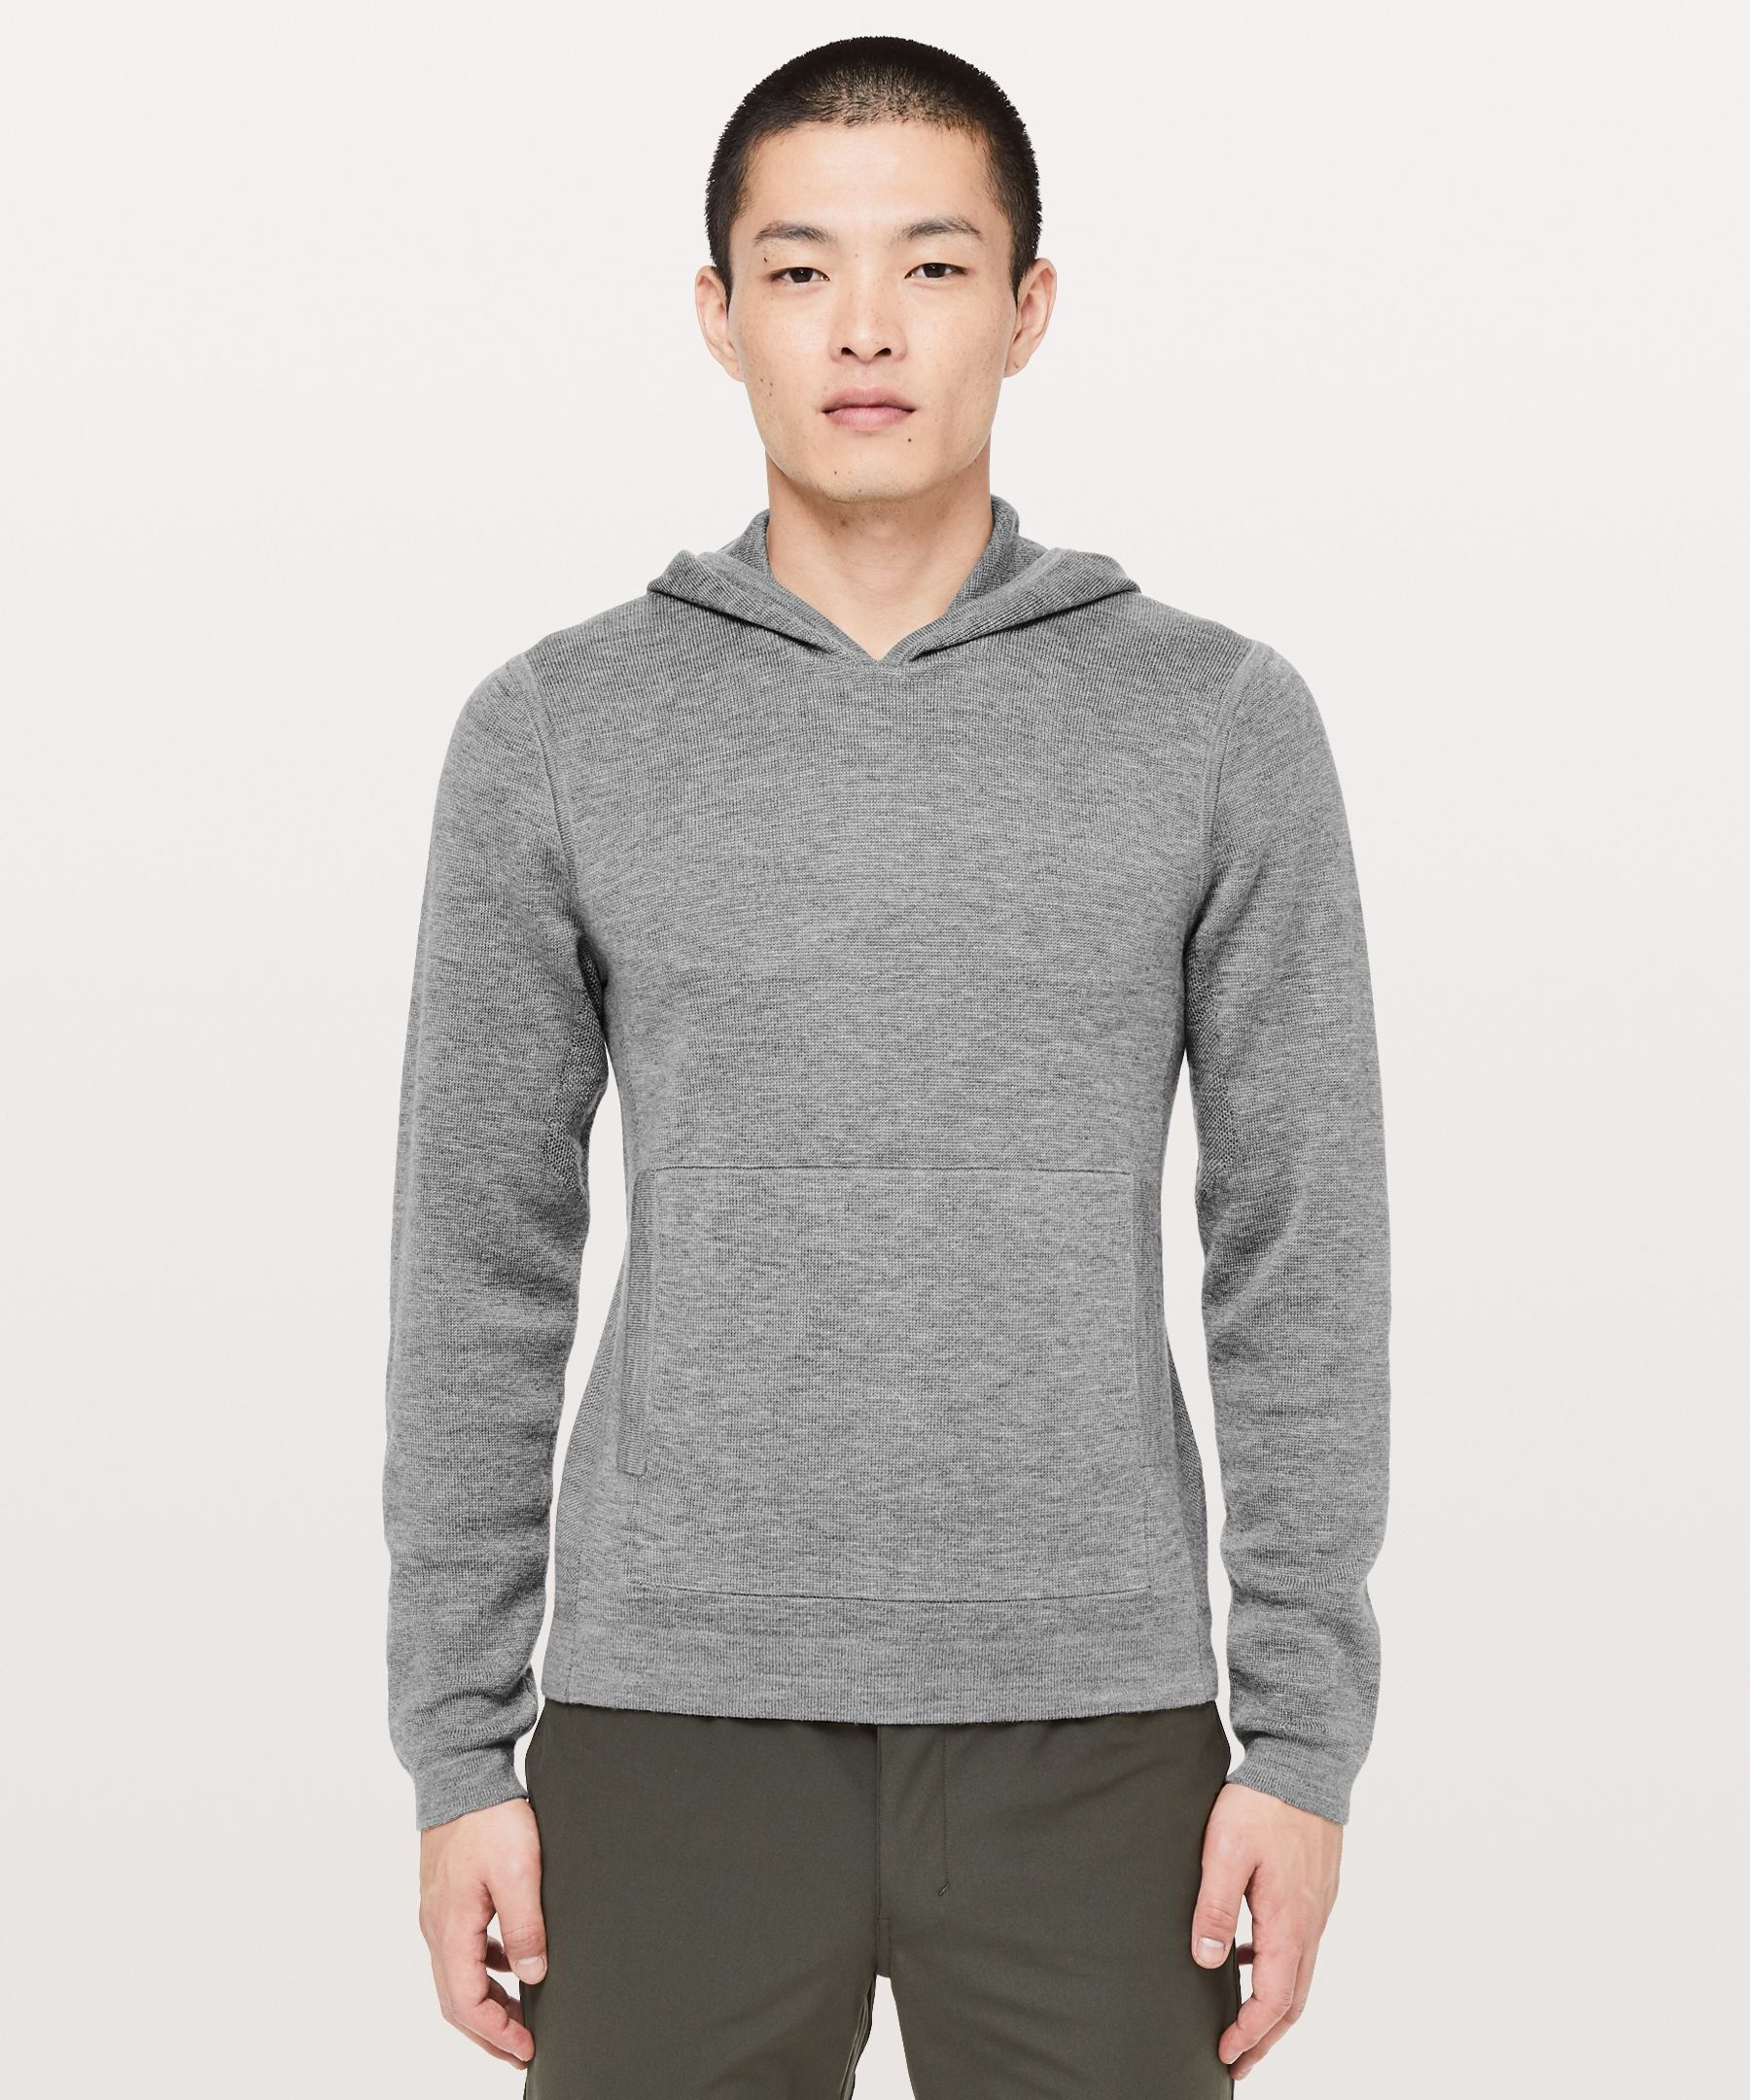 Lululemon Men S Alpine Air Pullover Heathered Core Medium Grey Size Xs Technical Clothing Athletic Apparel Pullover Men